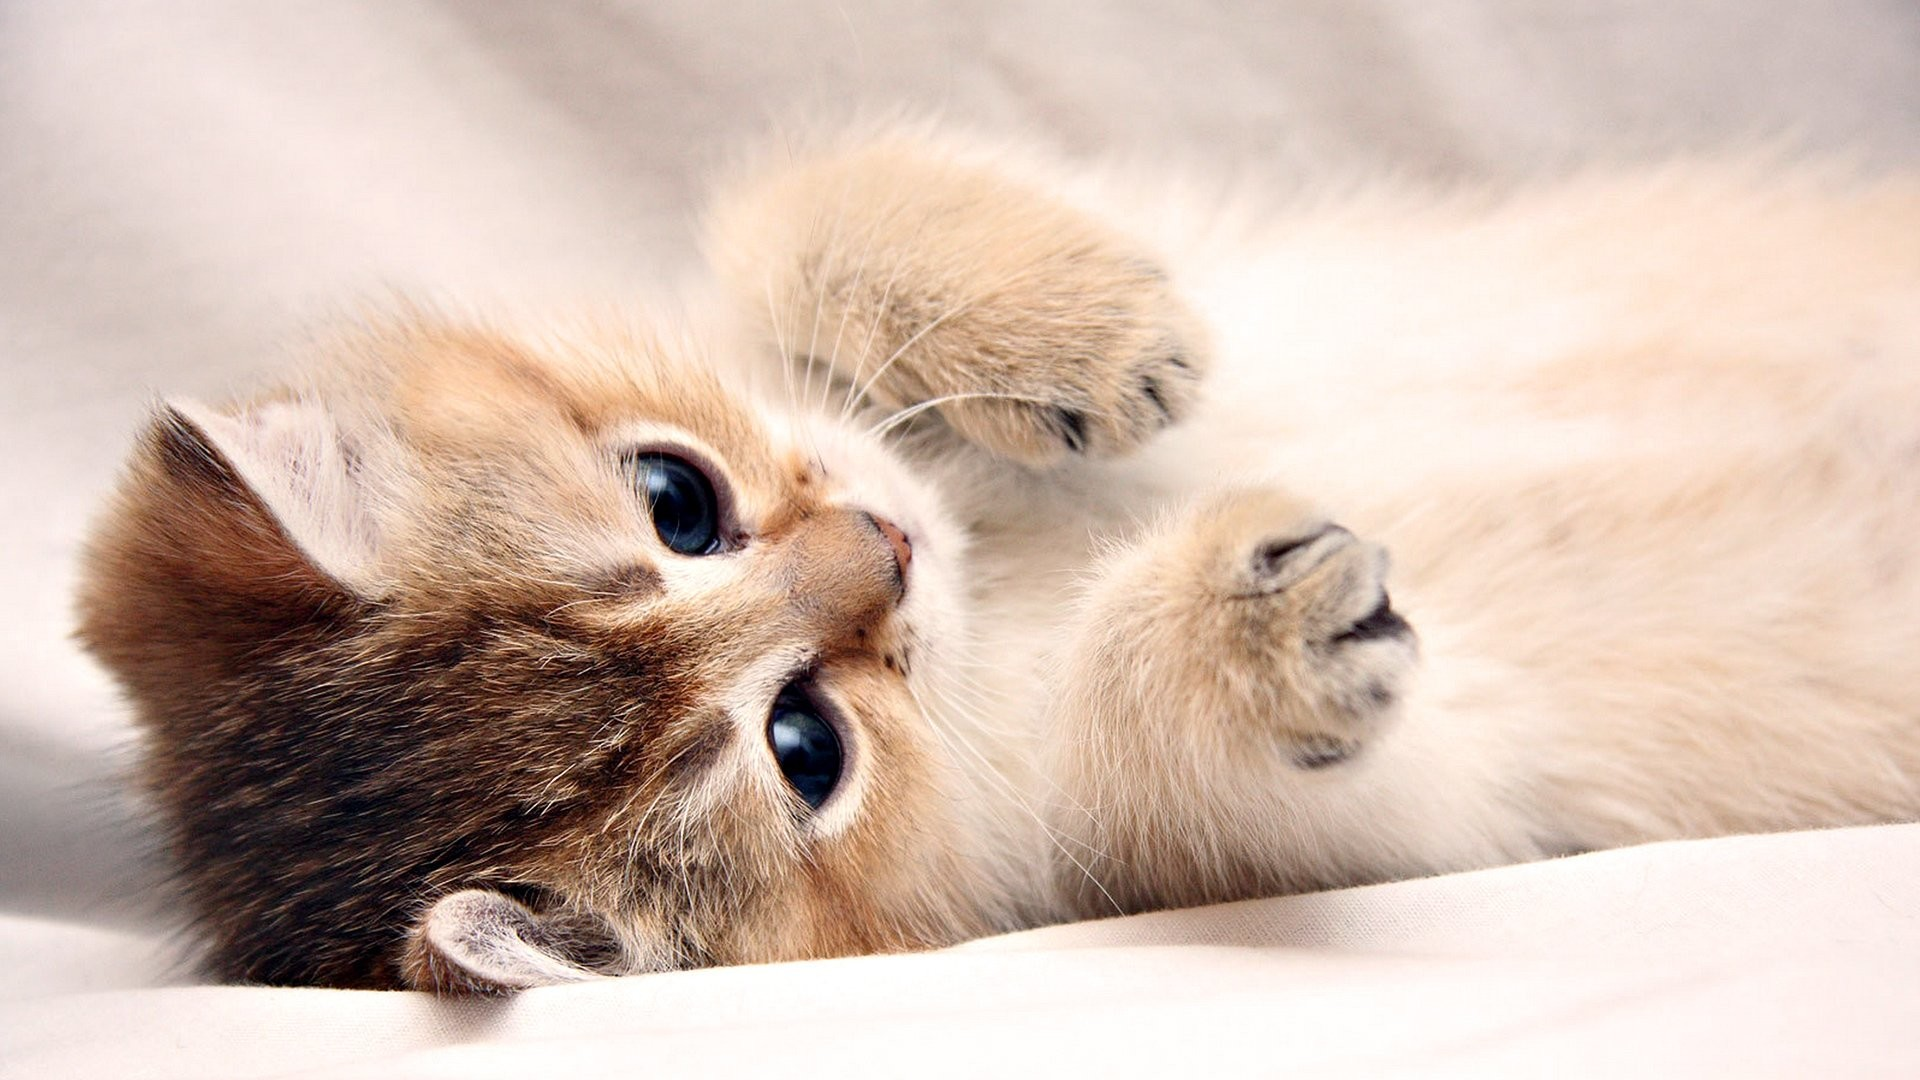 1920x1080 Cute Cat and Kitten HD wallpaper 1280×800 Cute Kitten Pictures Wallpapers  (44 Wallpapers